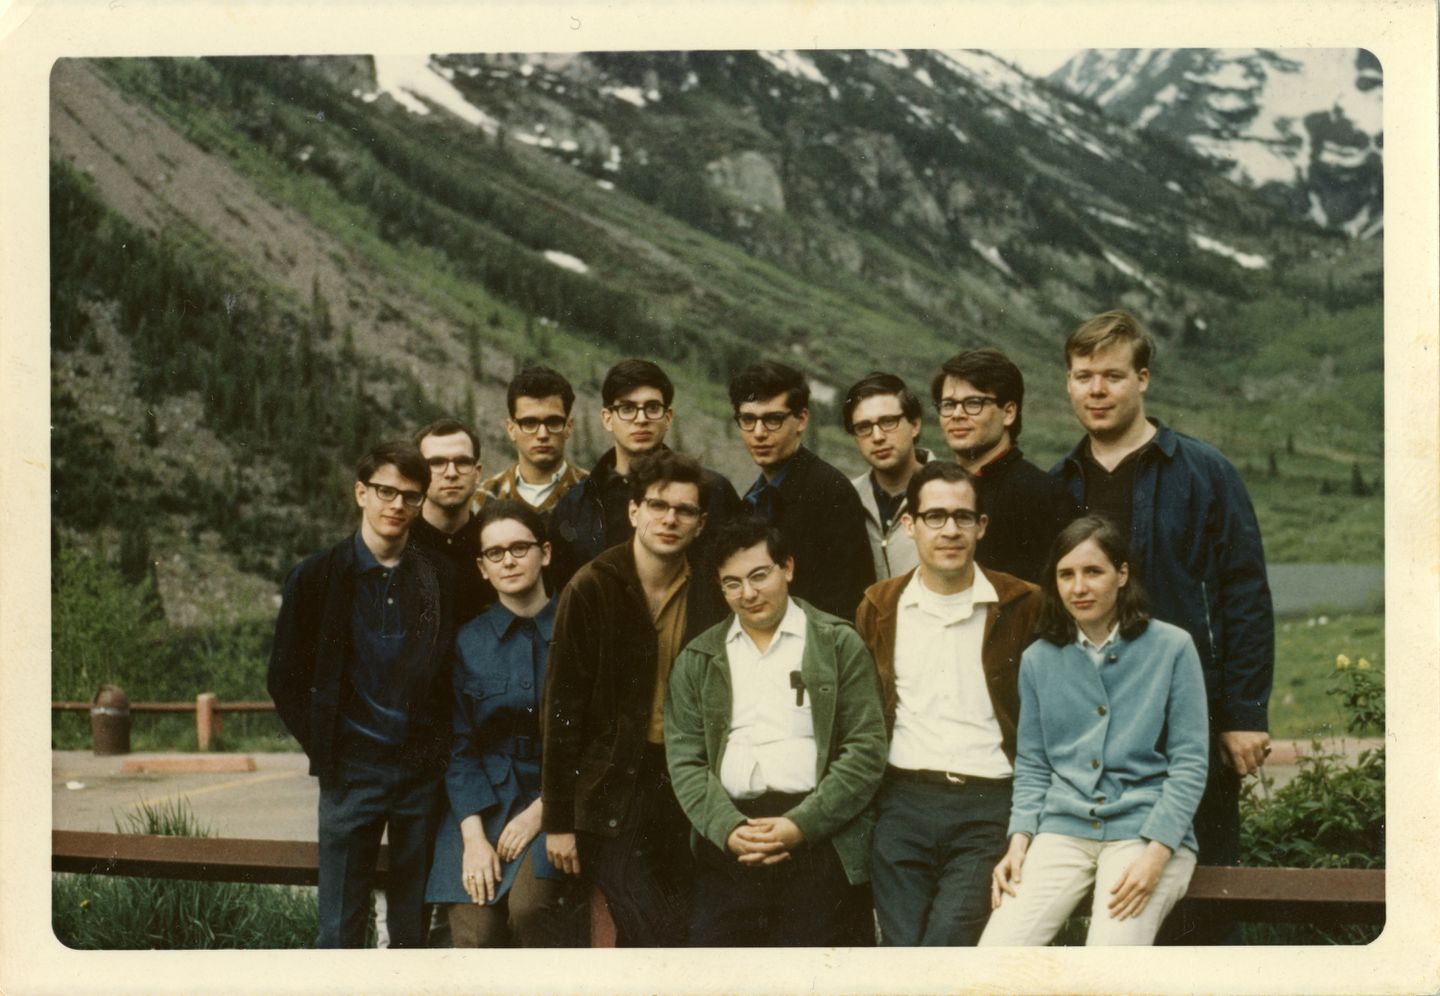 Albin Ifsich (standing third from left), John Gidwitz (standing sixth from left), and Lynn Harrell (standing far right) on a 1969 trip with other members of the University Circle Orchestra.